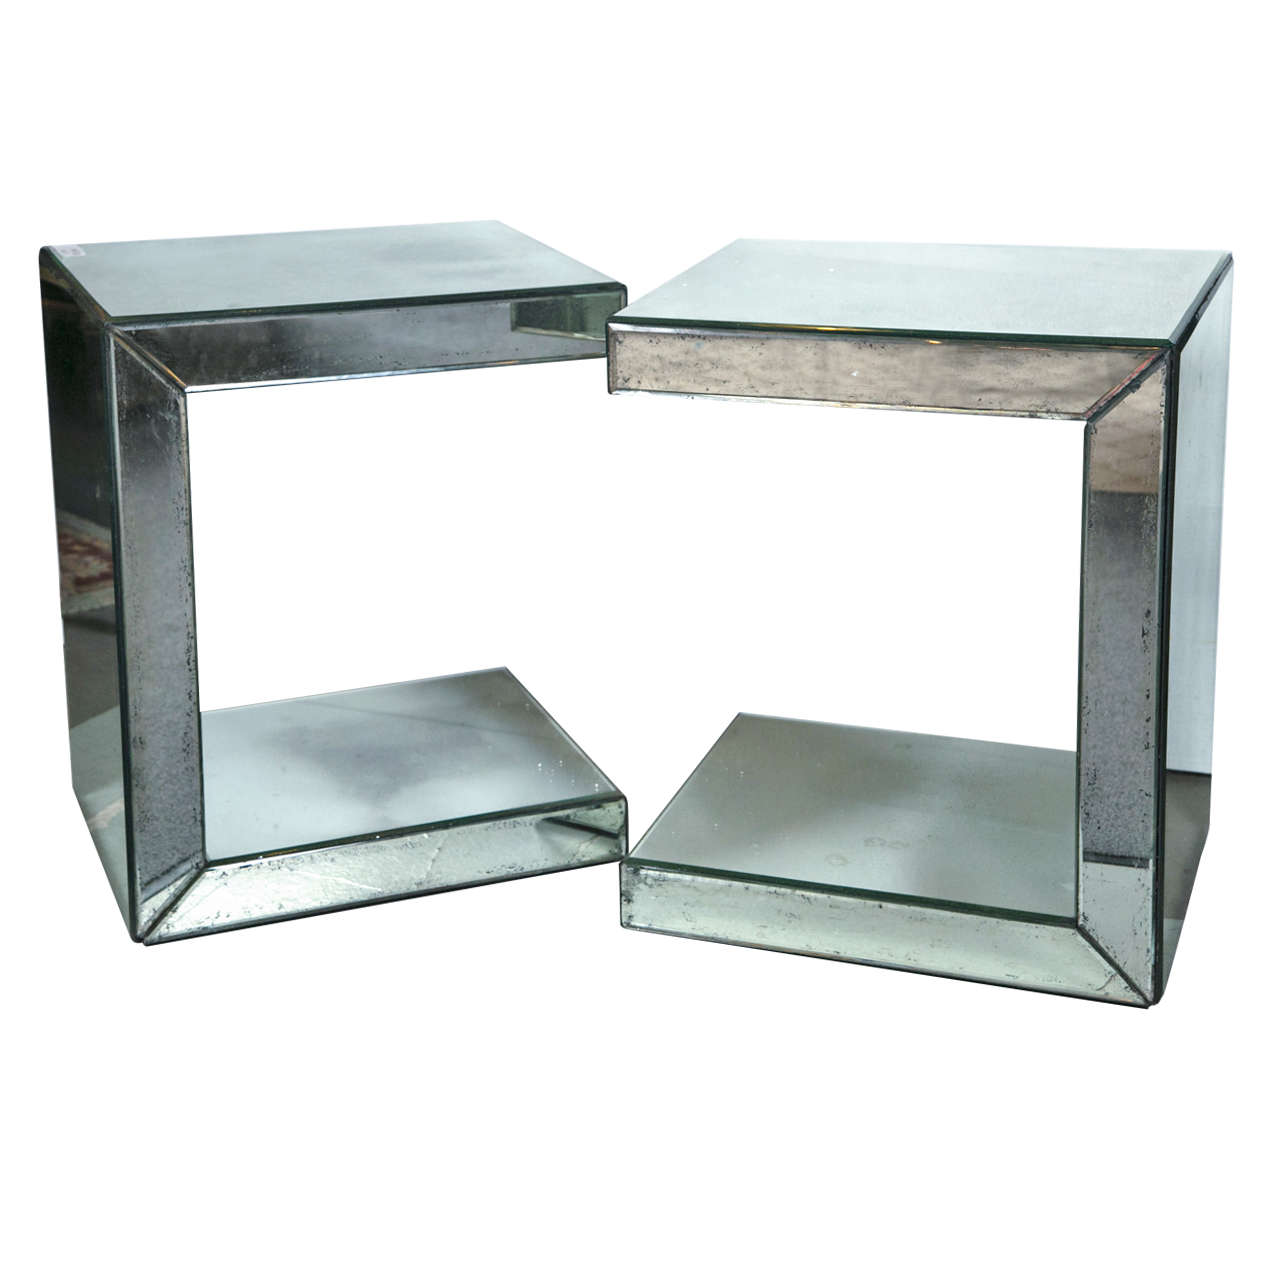 Pair Of Hollywood Regency Style C Shaped Mirrored End Tables | From A  Unique Collection